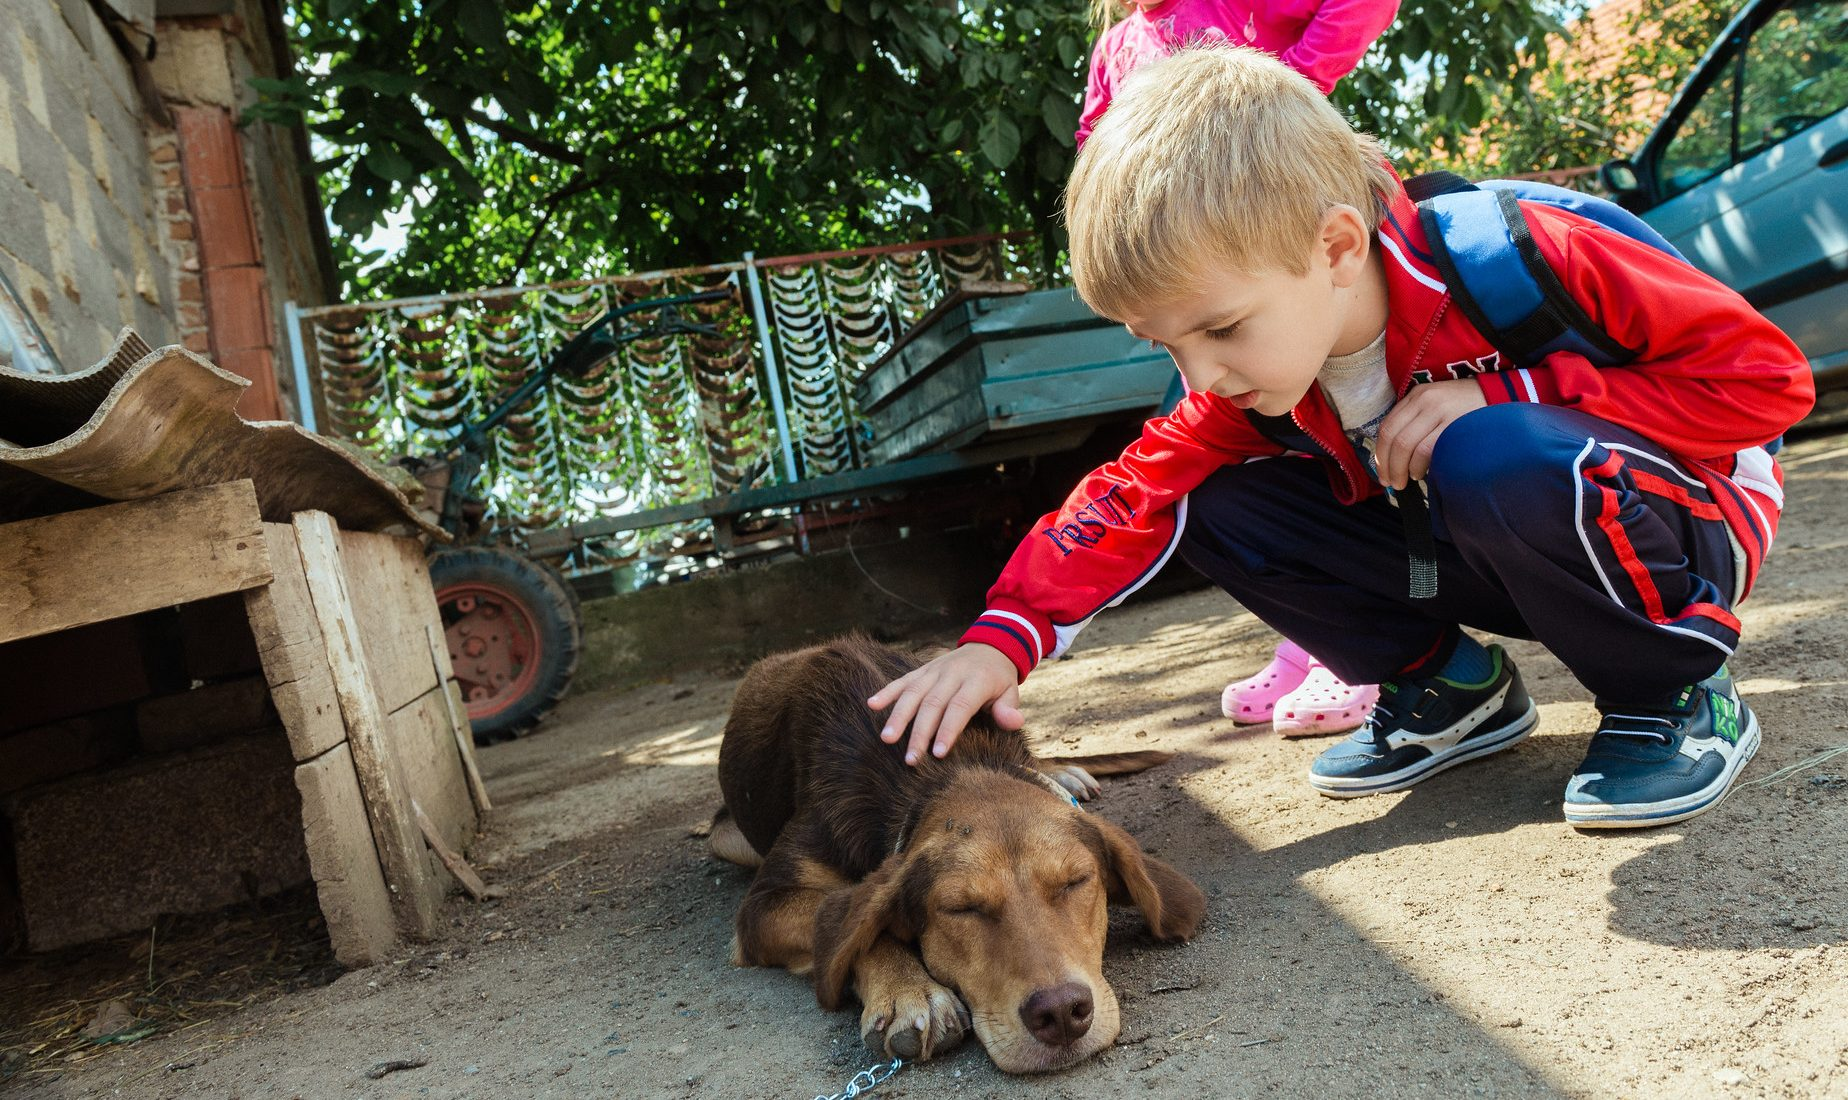 Dogs are a major part of everyday life in villages in Serbia. They have an immense influence on the development of children who live there.